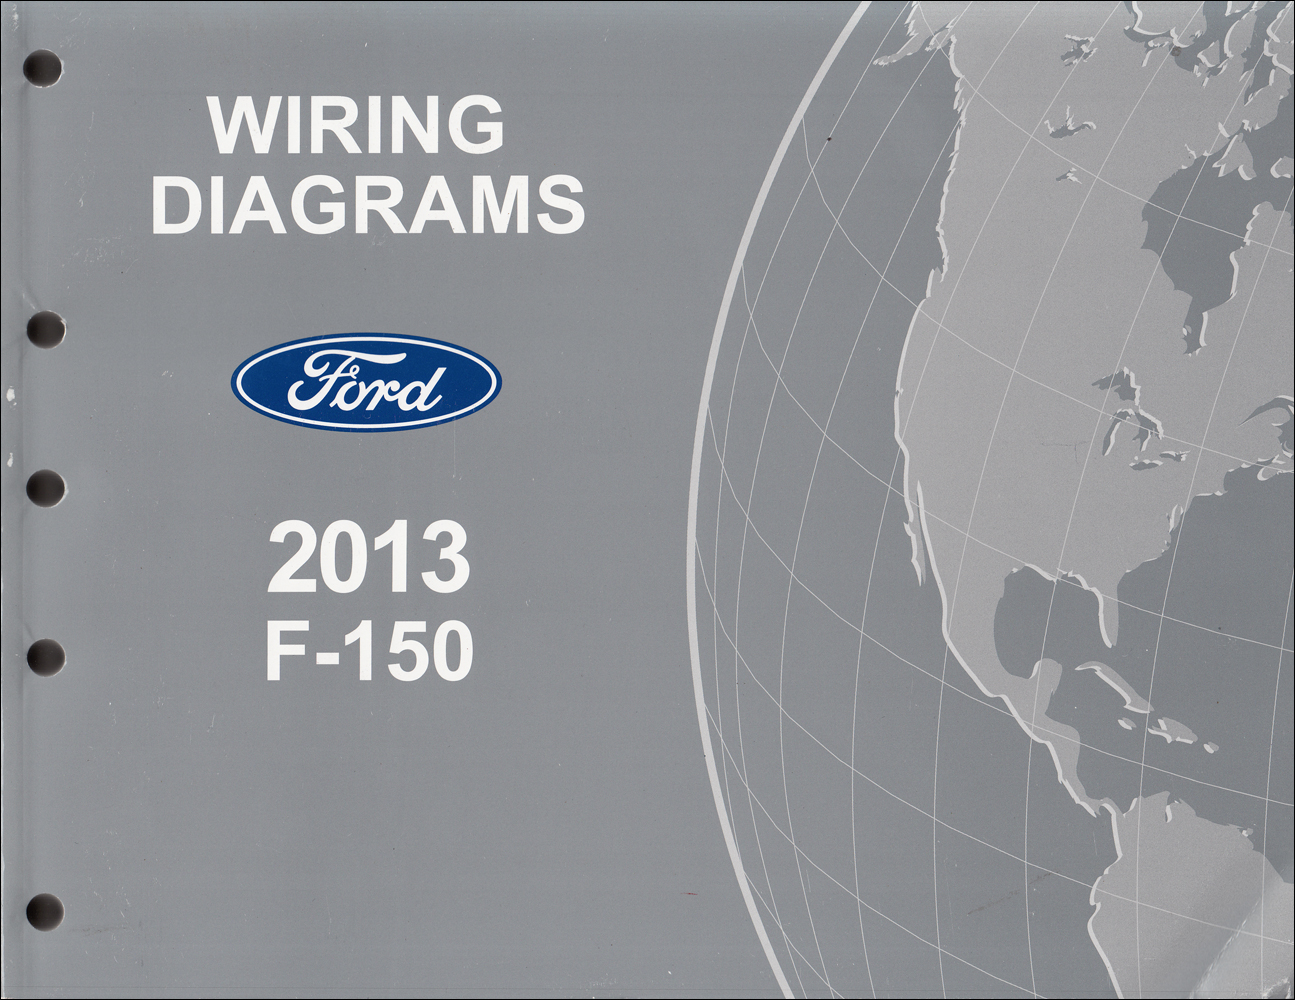 hight resolution of  4 6 v8 engine diagram 2013 ford f 150 wiring diagram manual originalwiring diagram ford f series 16